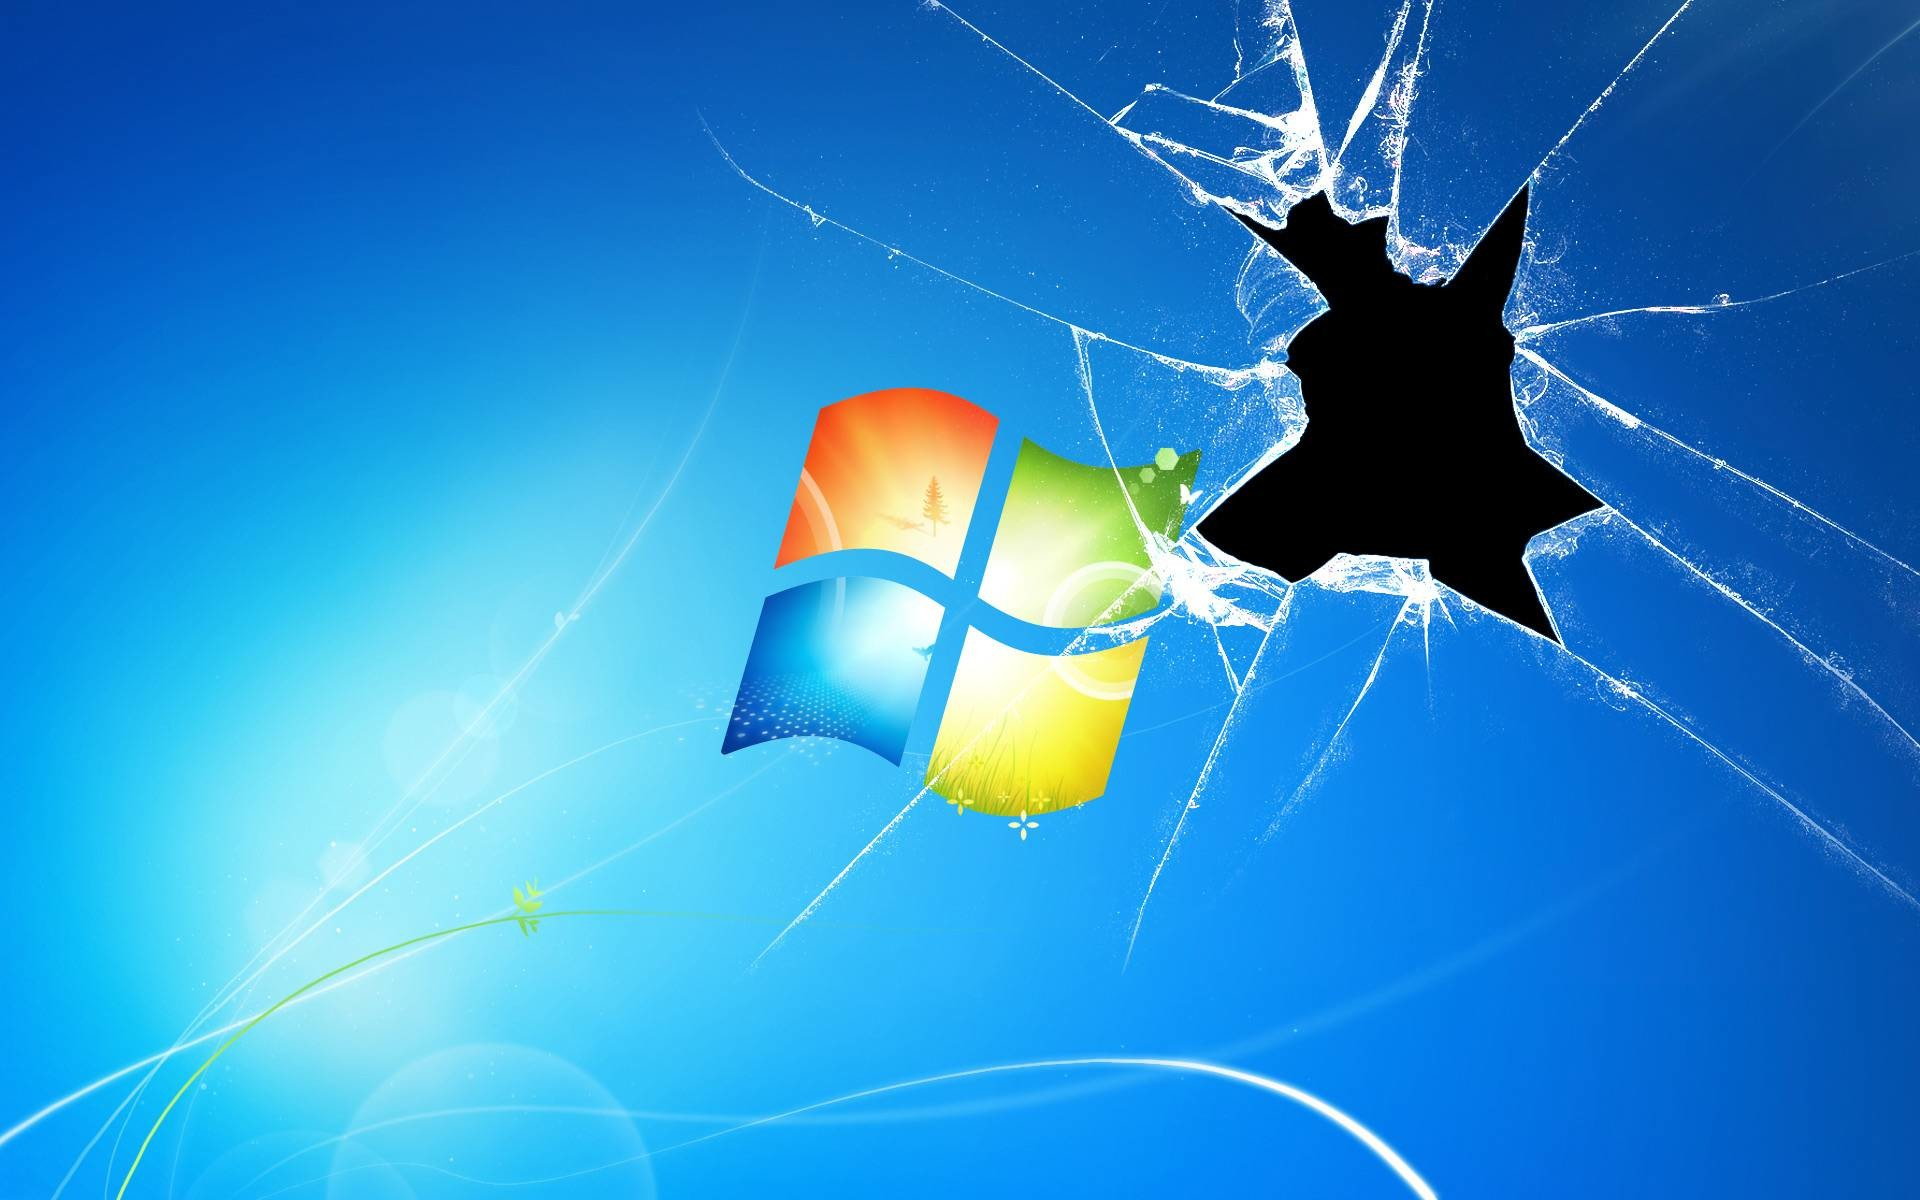 Cracked Screen Wallpaper Windows 10 77 images 1920x1200